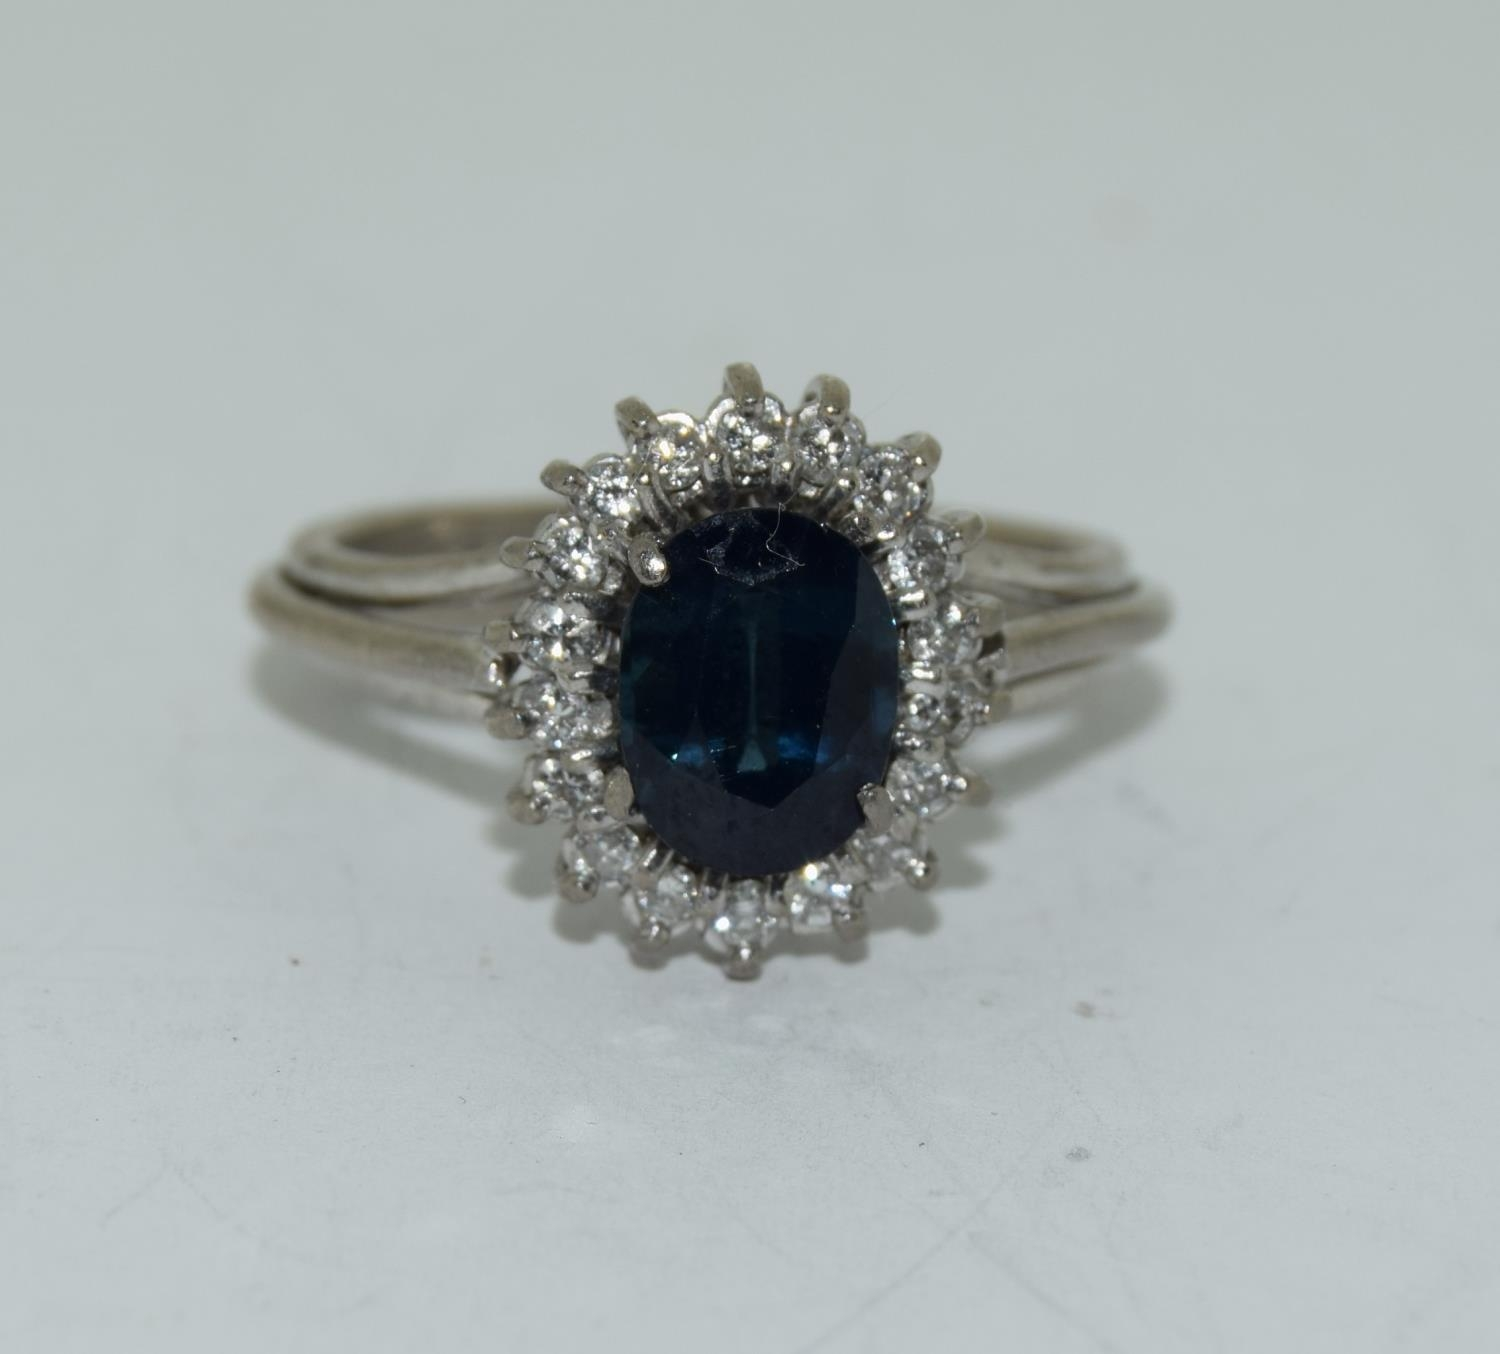 An 18ct white gold ladies diamond and sapphire ring, Size L